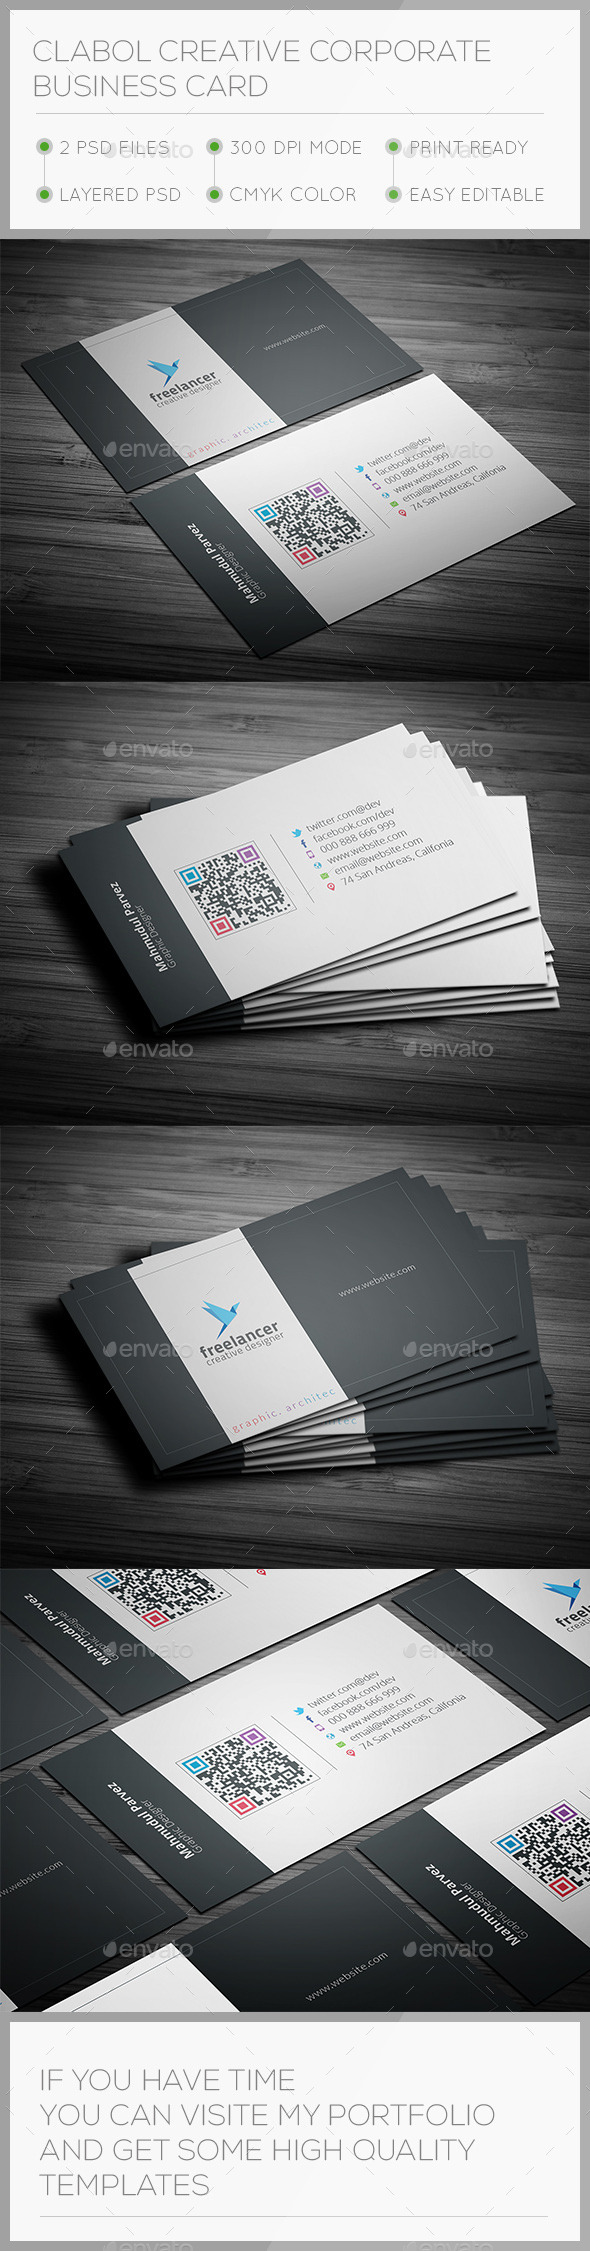 GraphicRiver Clabol Corporate Business Card 9672290